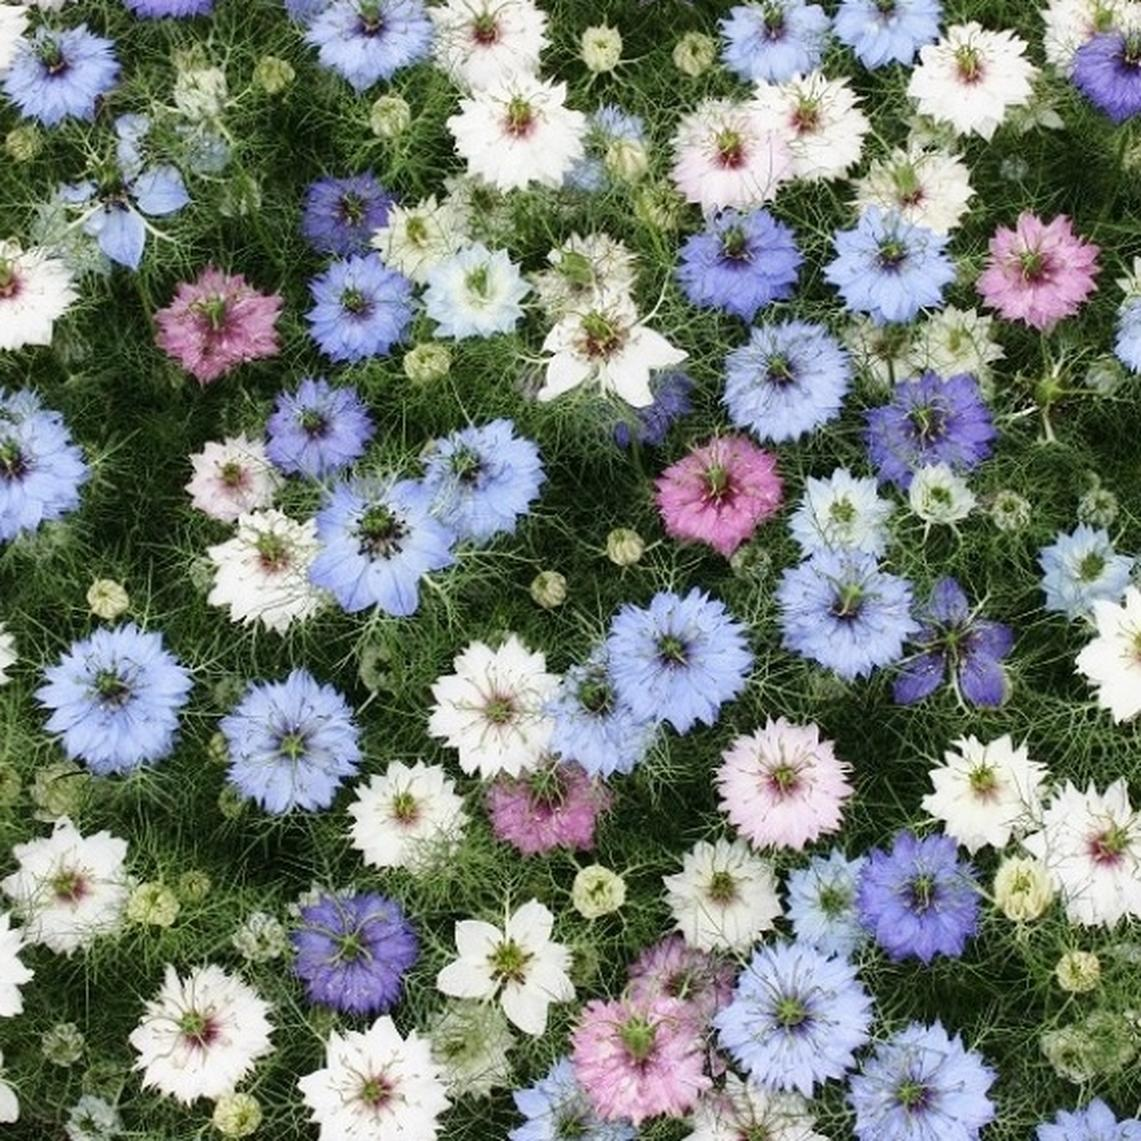 Love in a Mist Seeds - Mixed Colors - Ounce